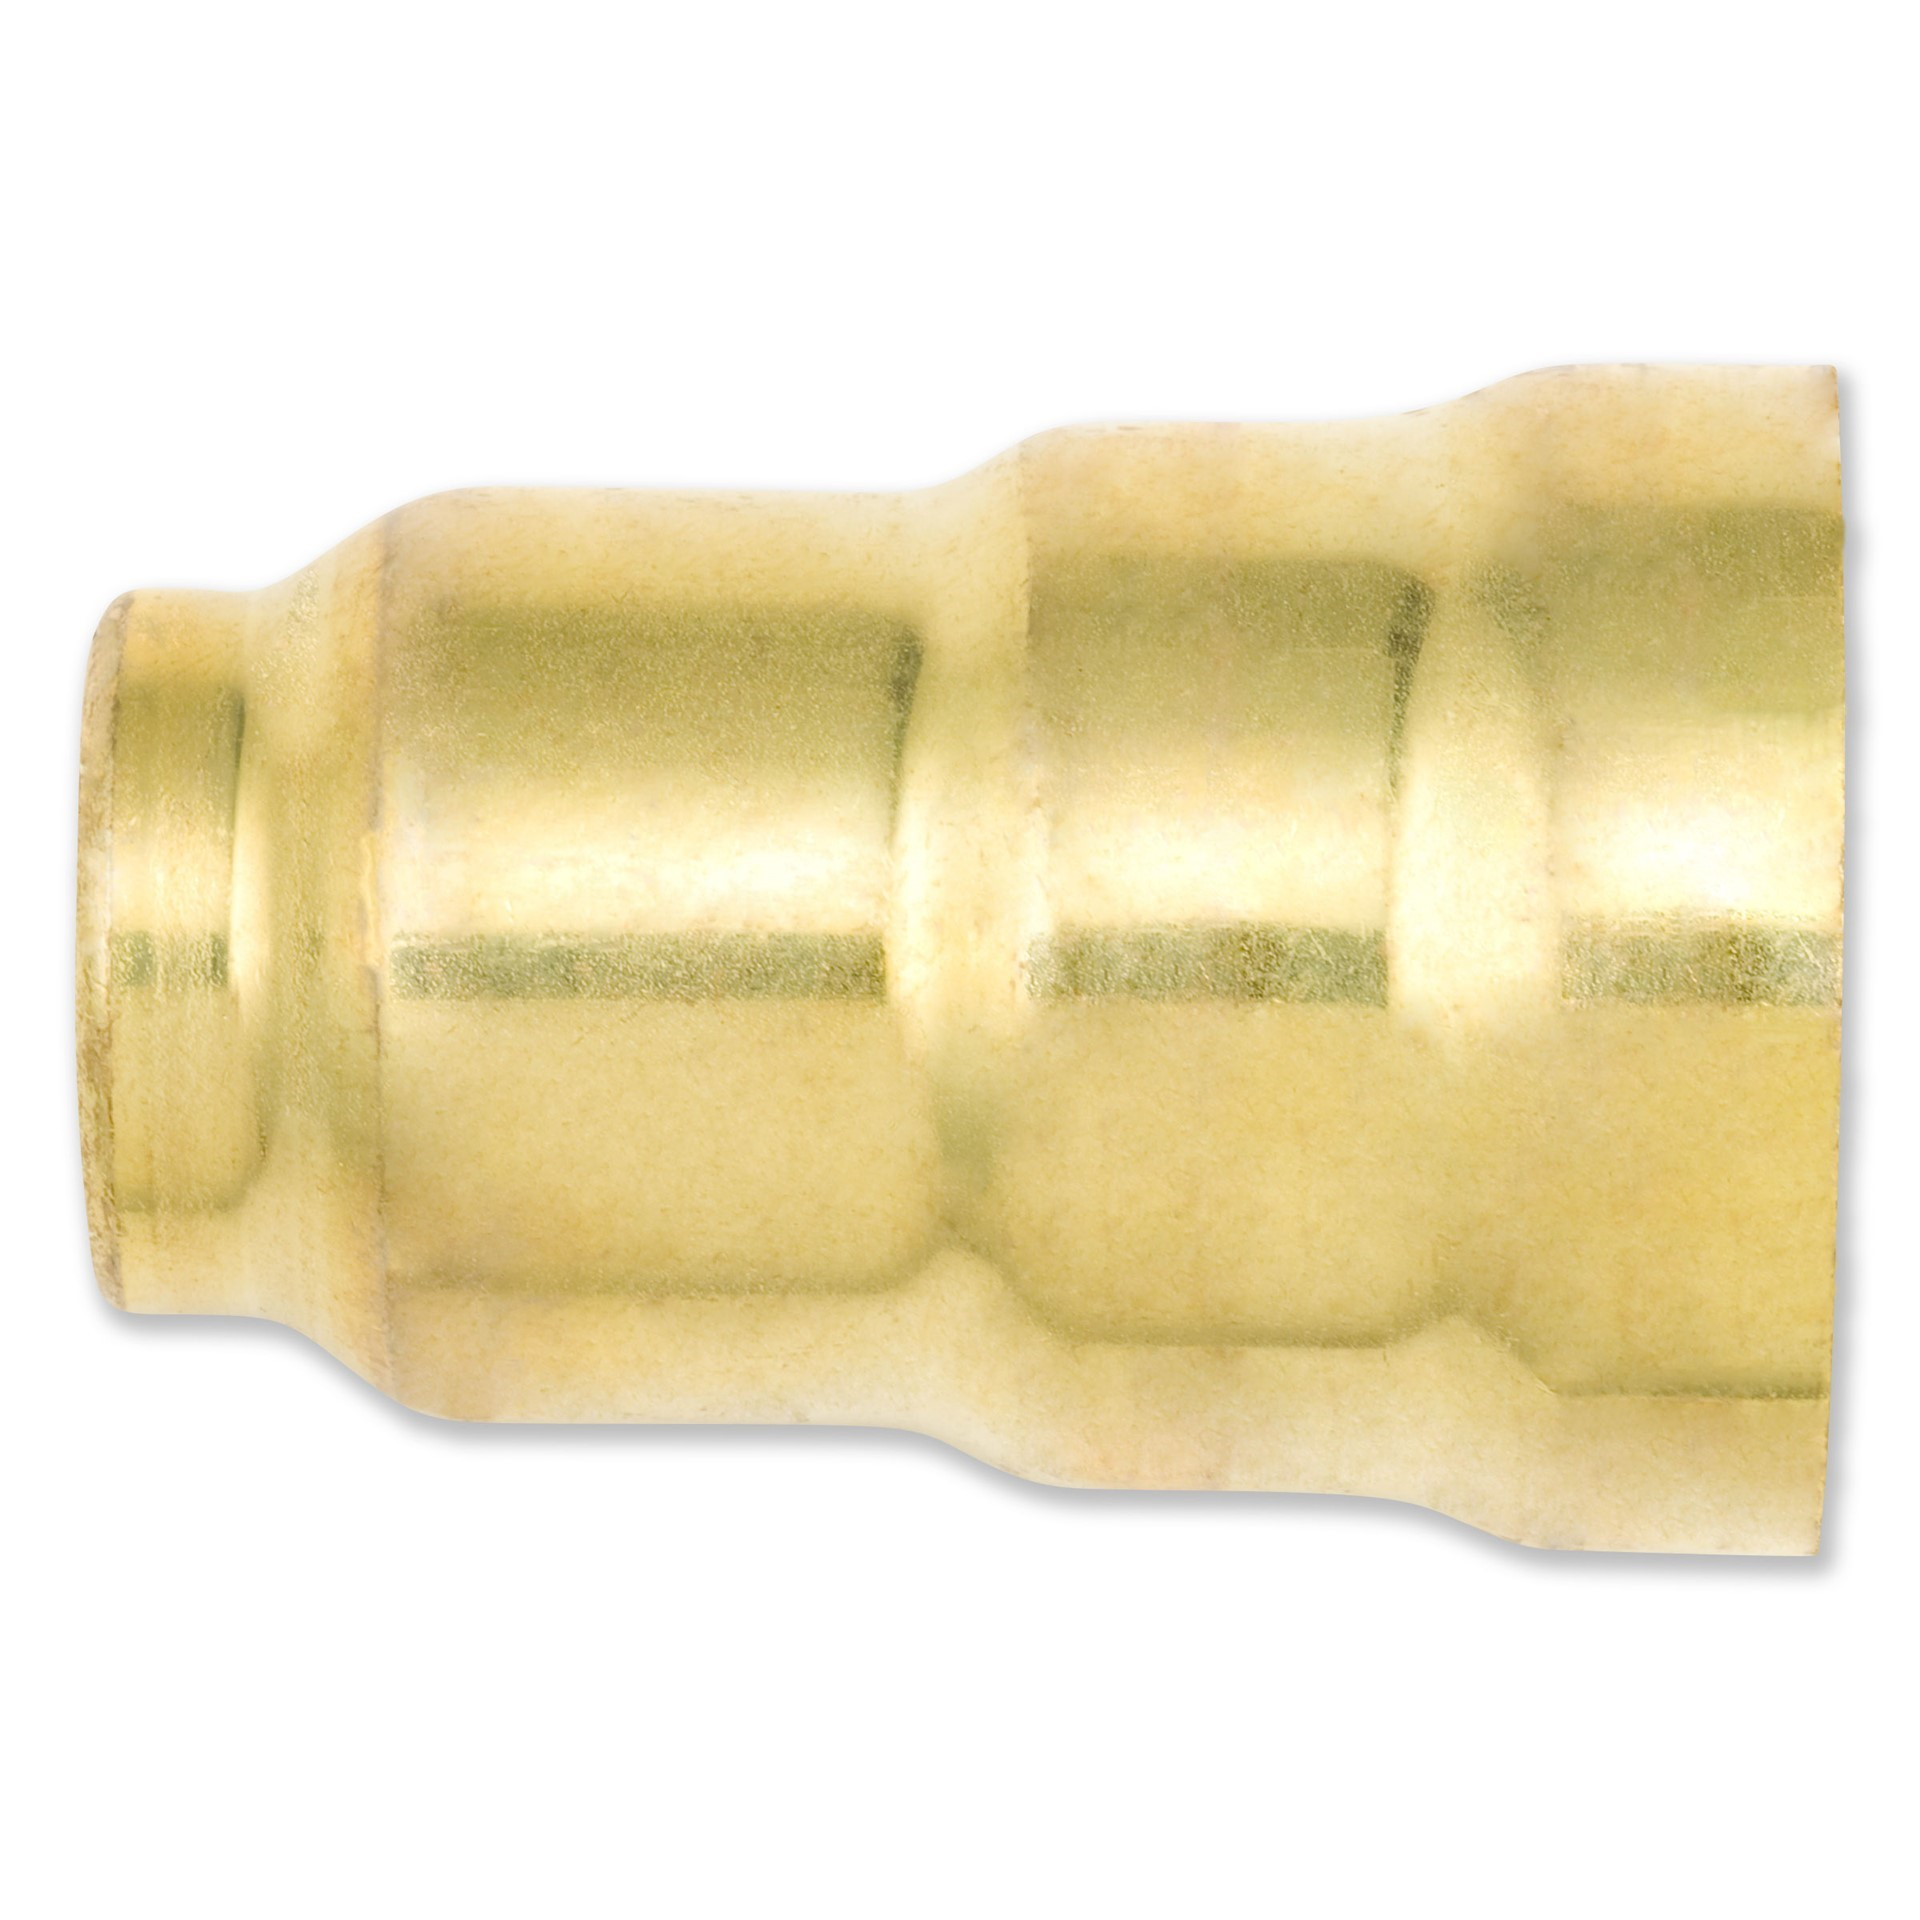 hight resolution of ap63411 alliant heui fuel injector brass sleeve ford 1994 2003